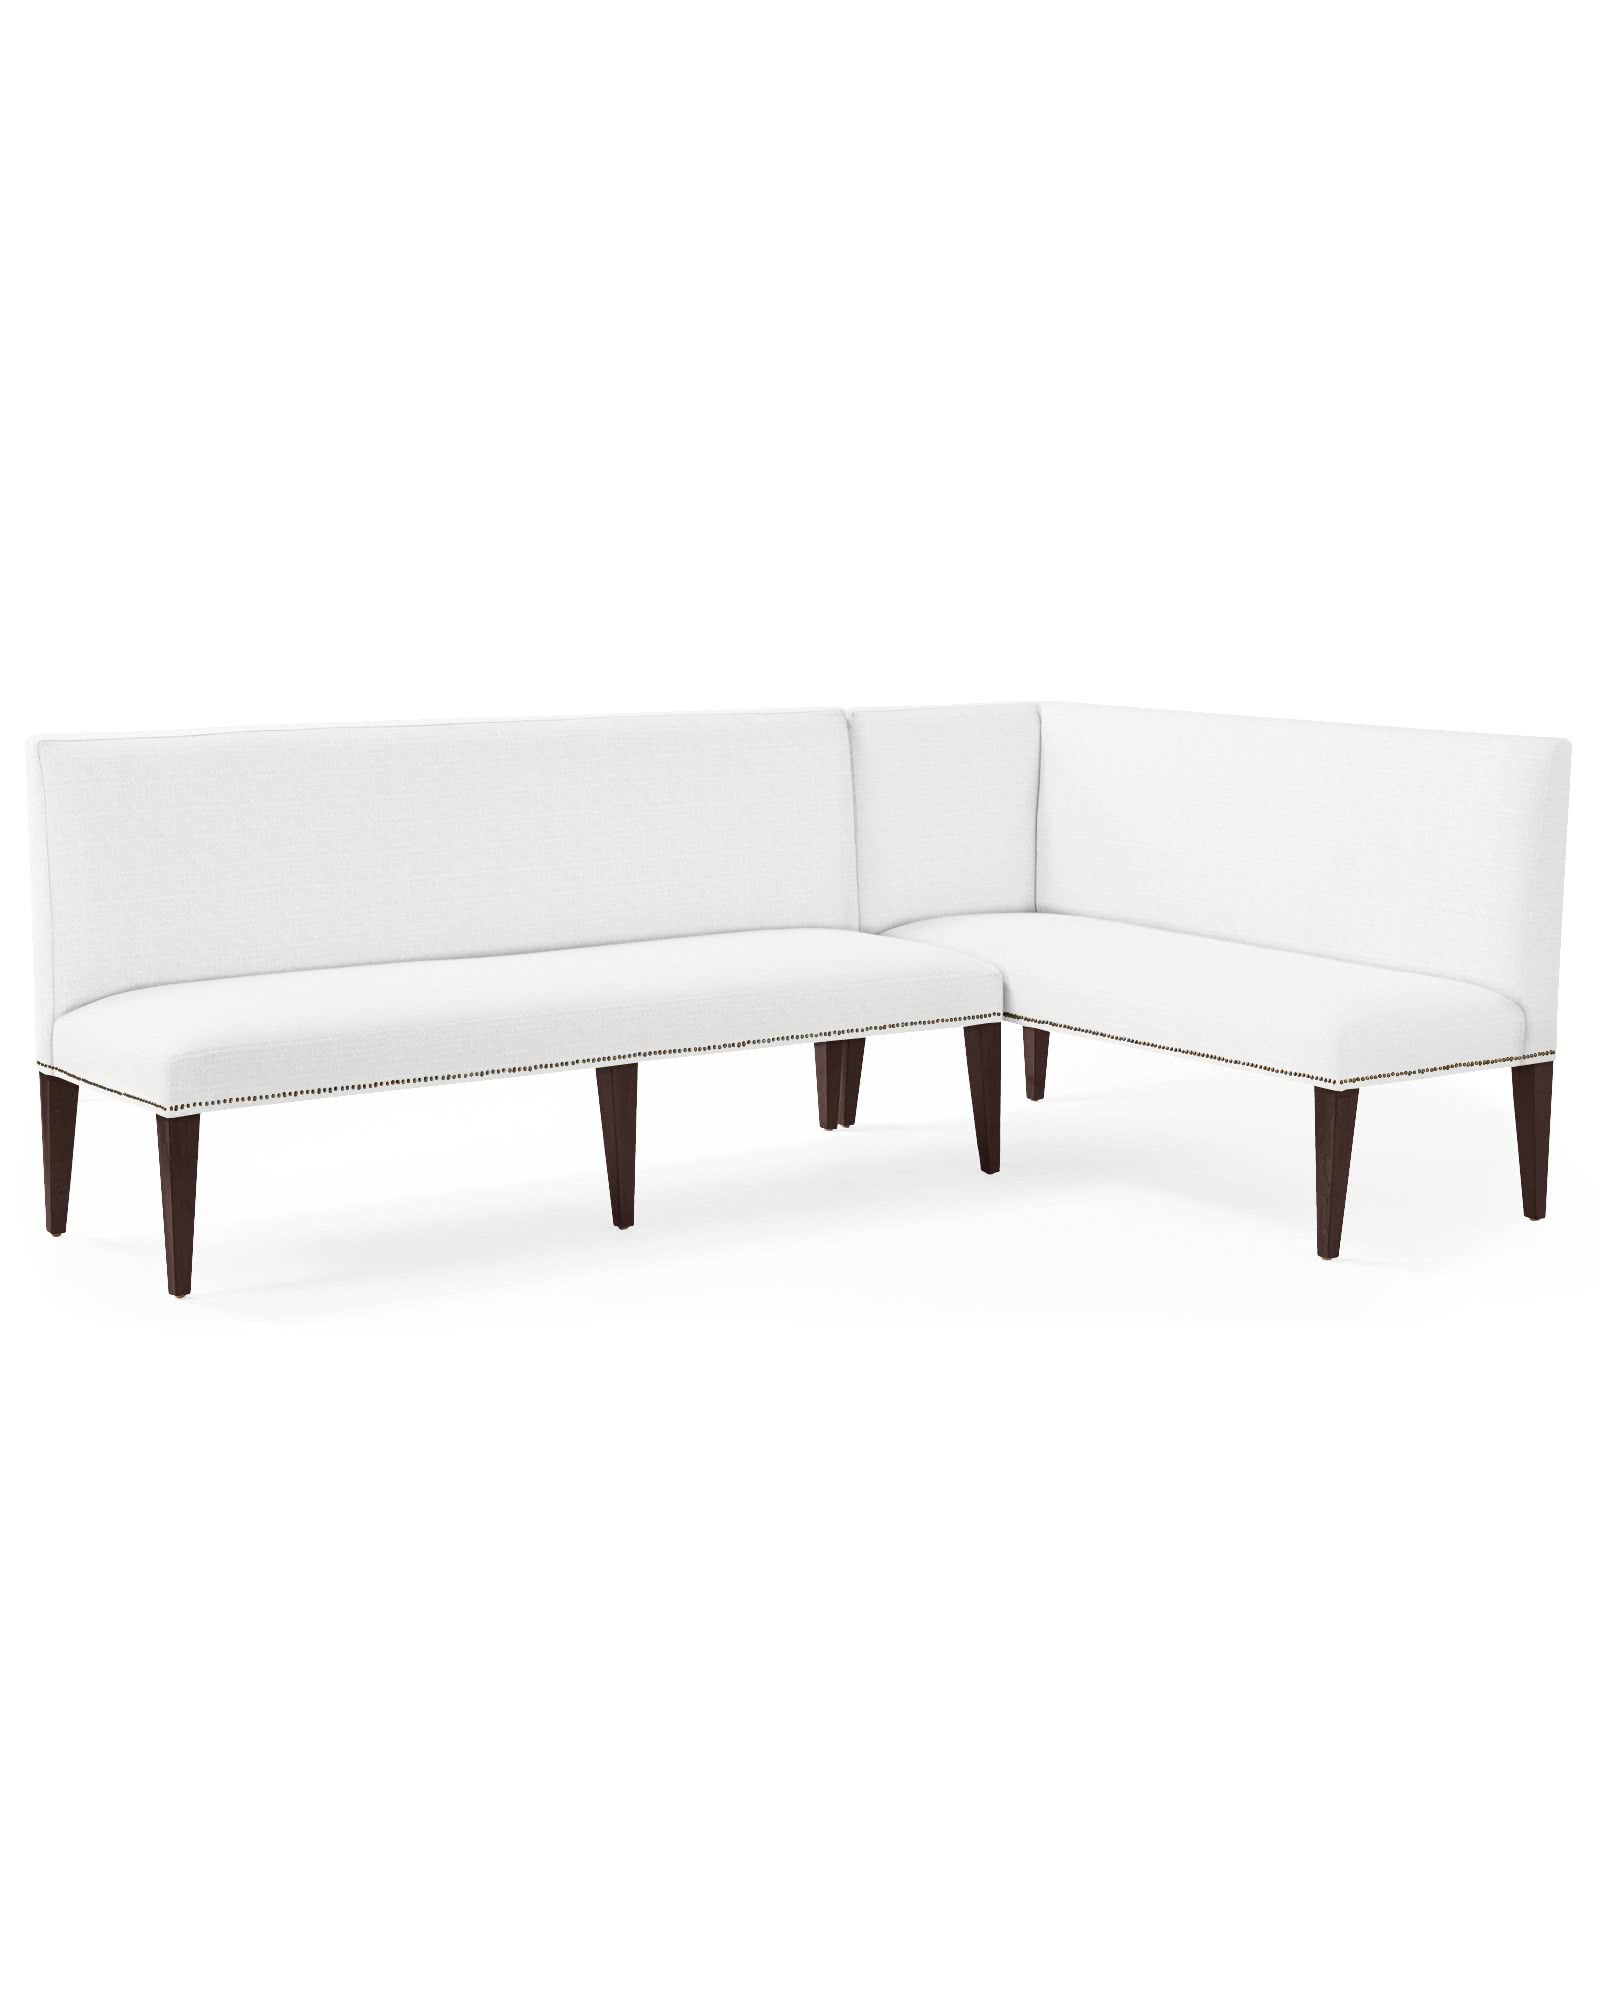 Ross Right-Facing Dining Banquette with Nailheads,